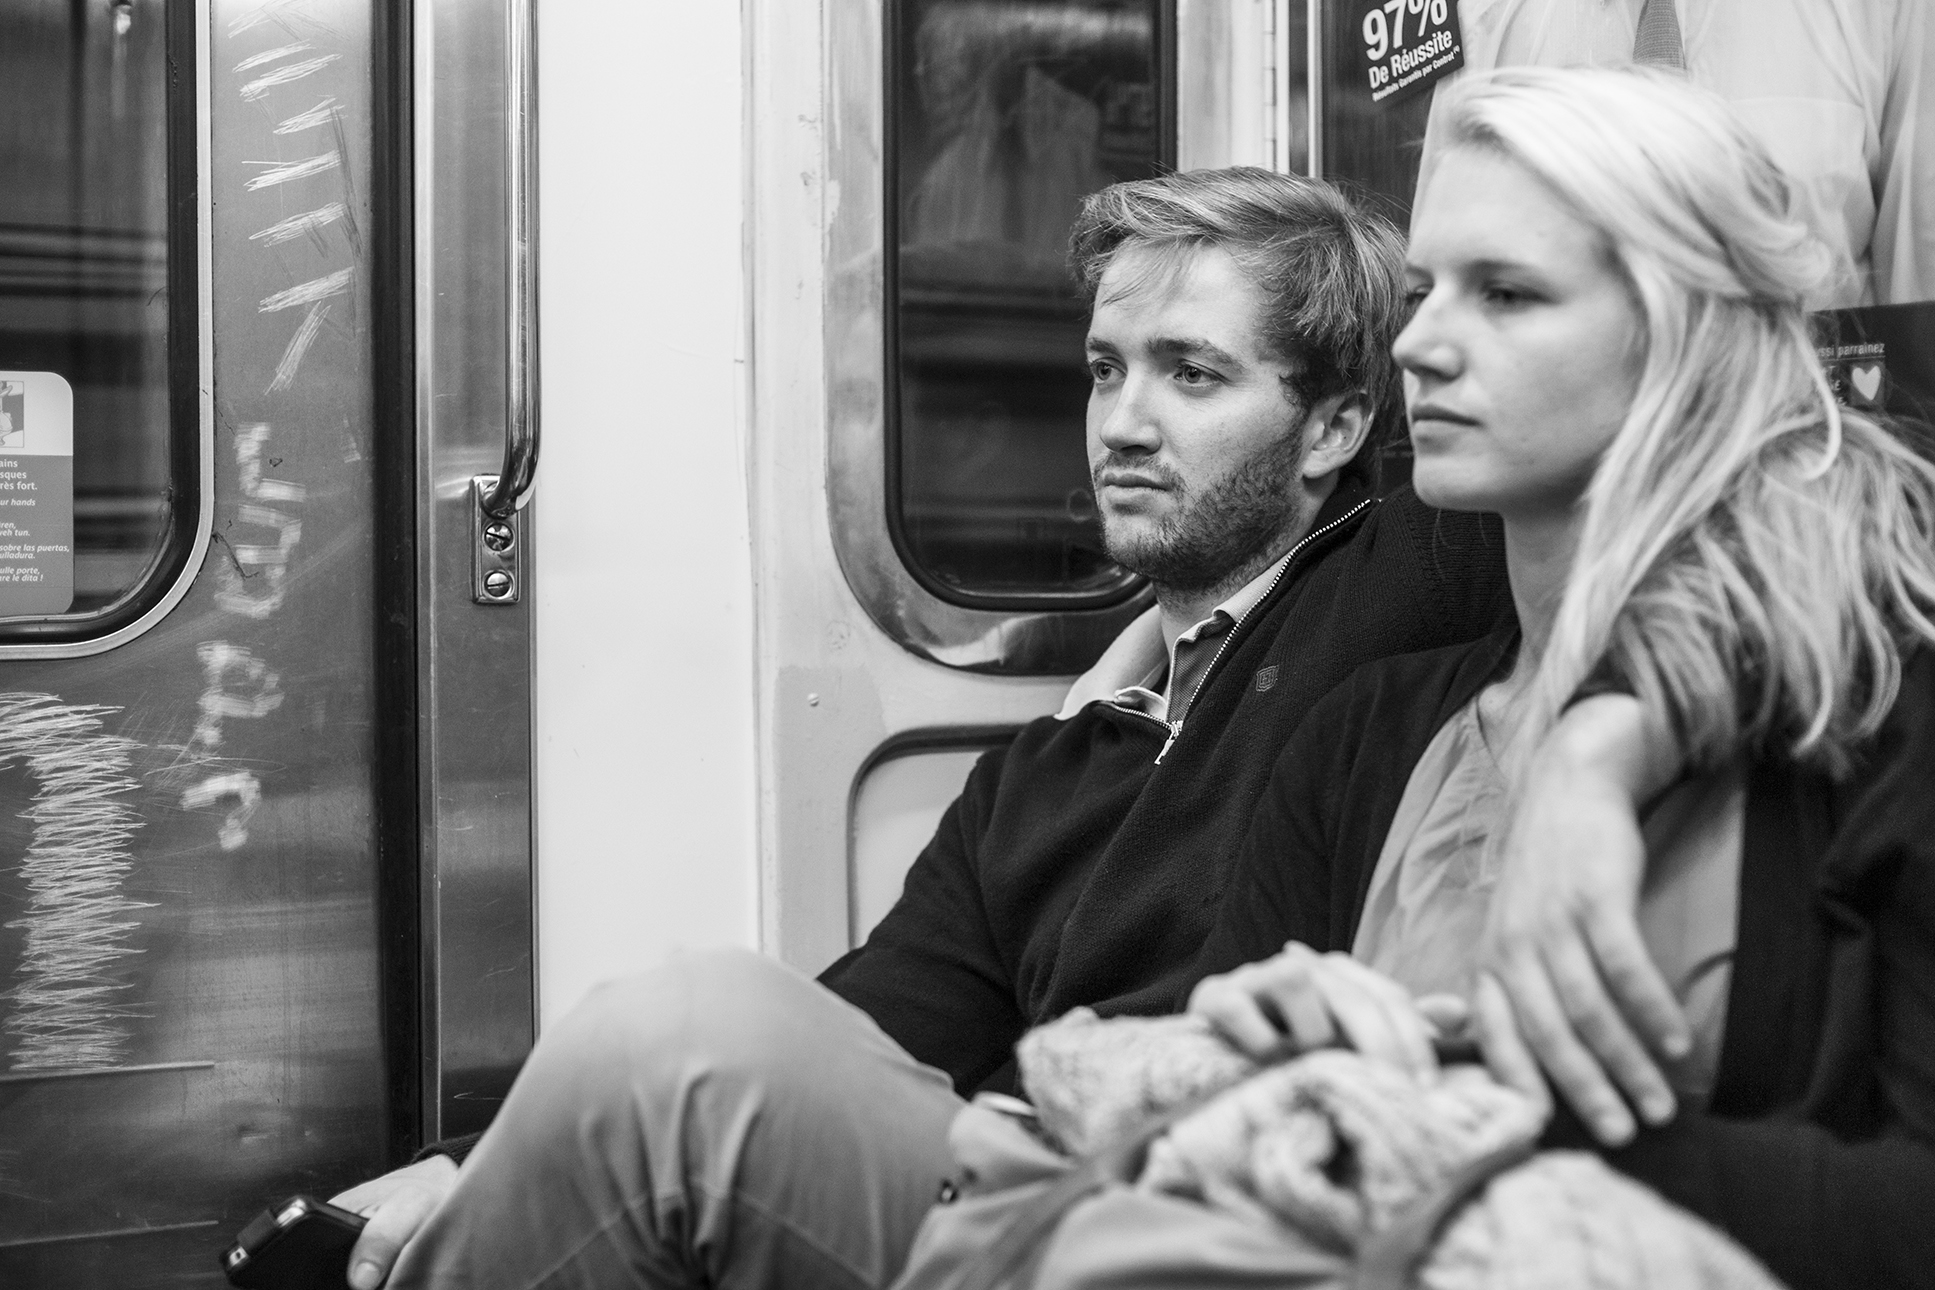 couple-metro-Paris-septembre-2012.jpg